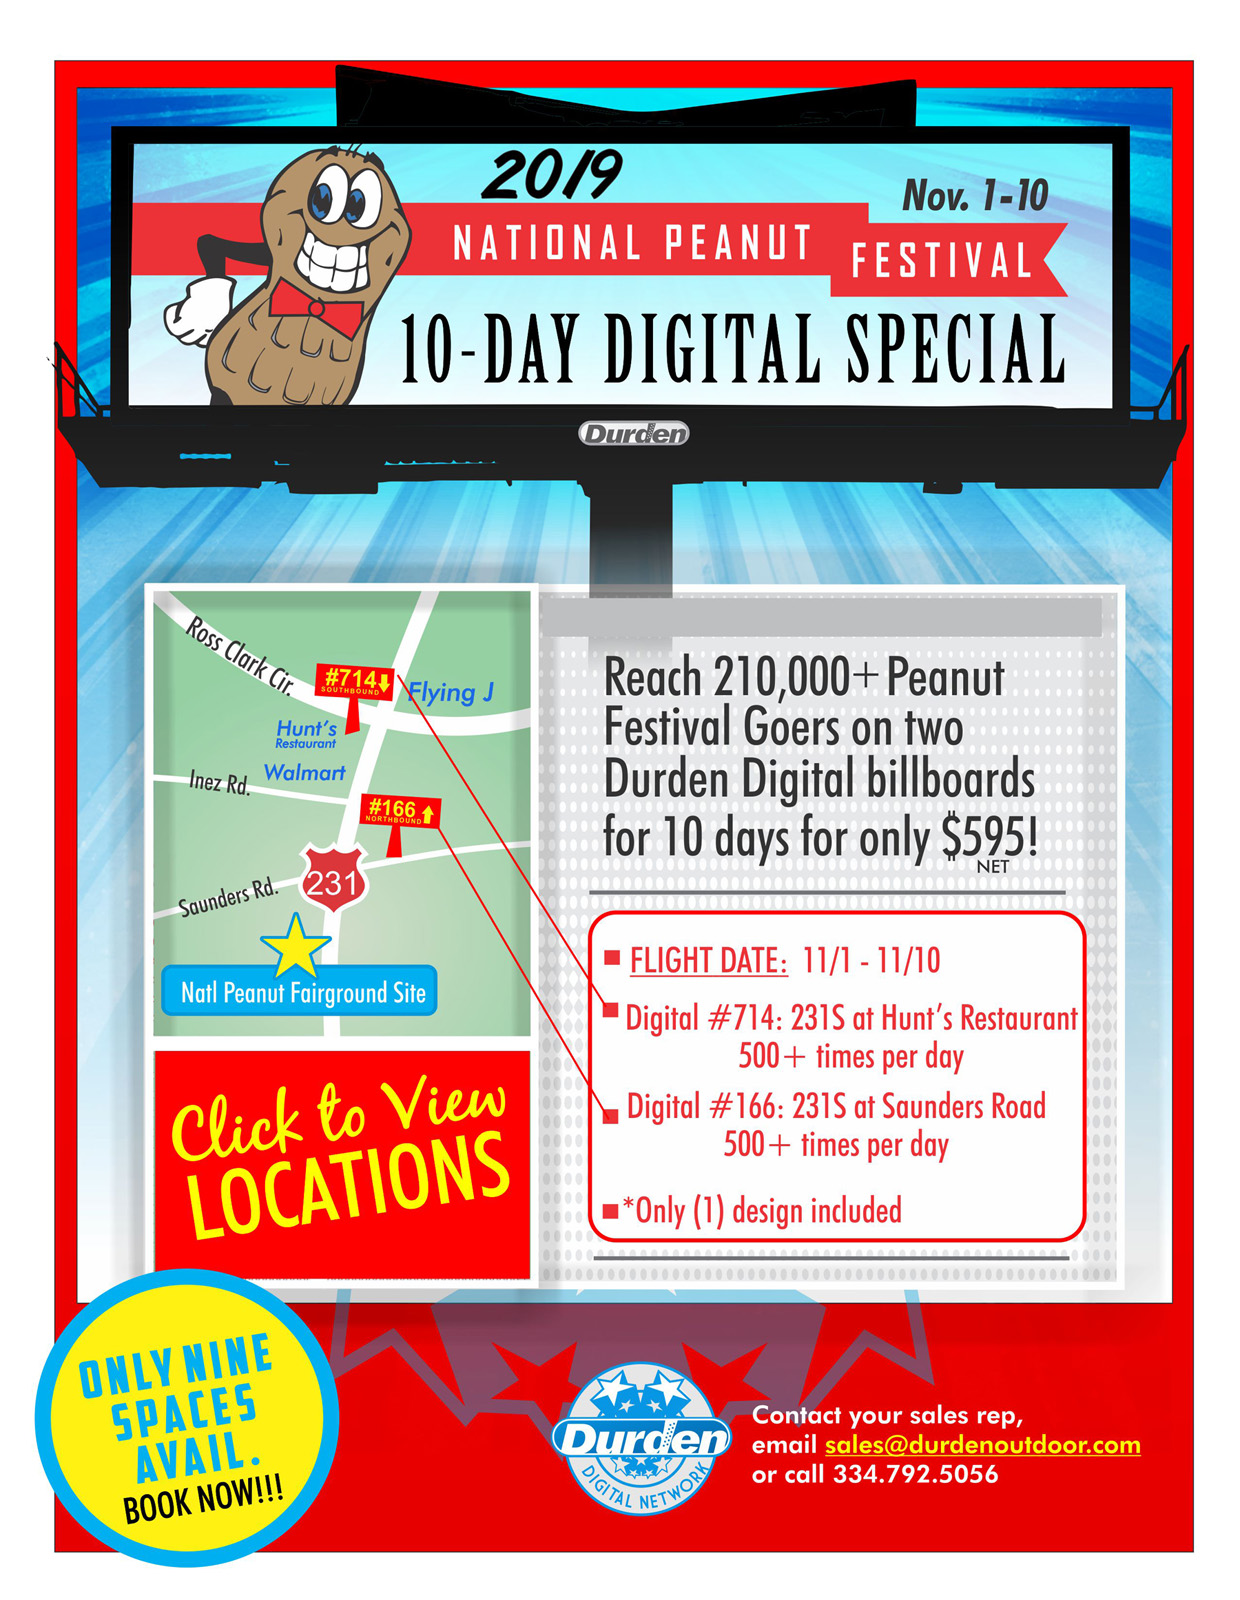 National Peanut Festival 10-Day Digital Special